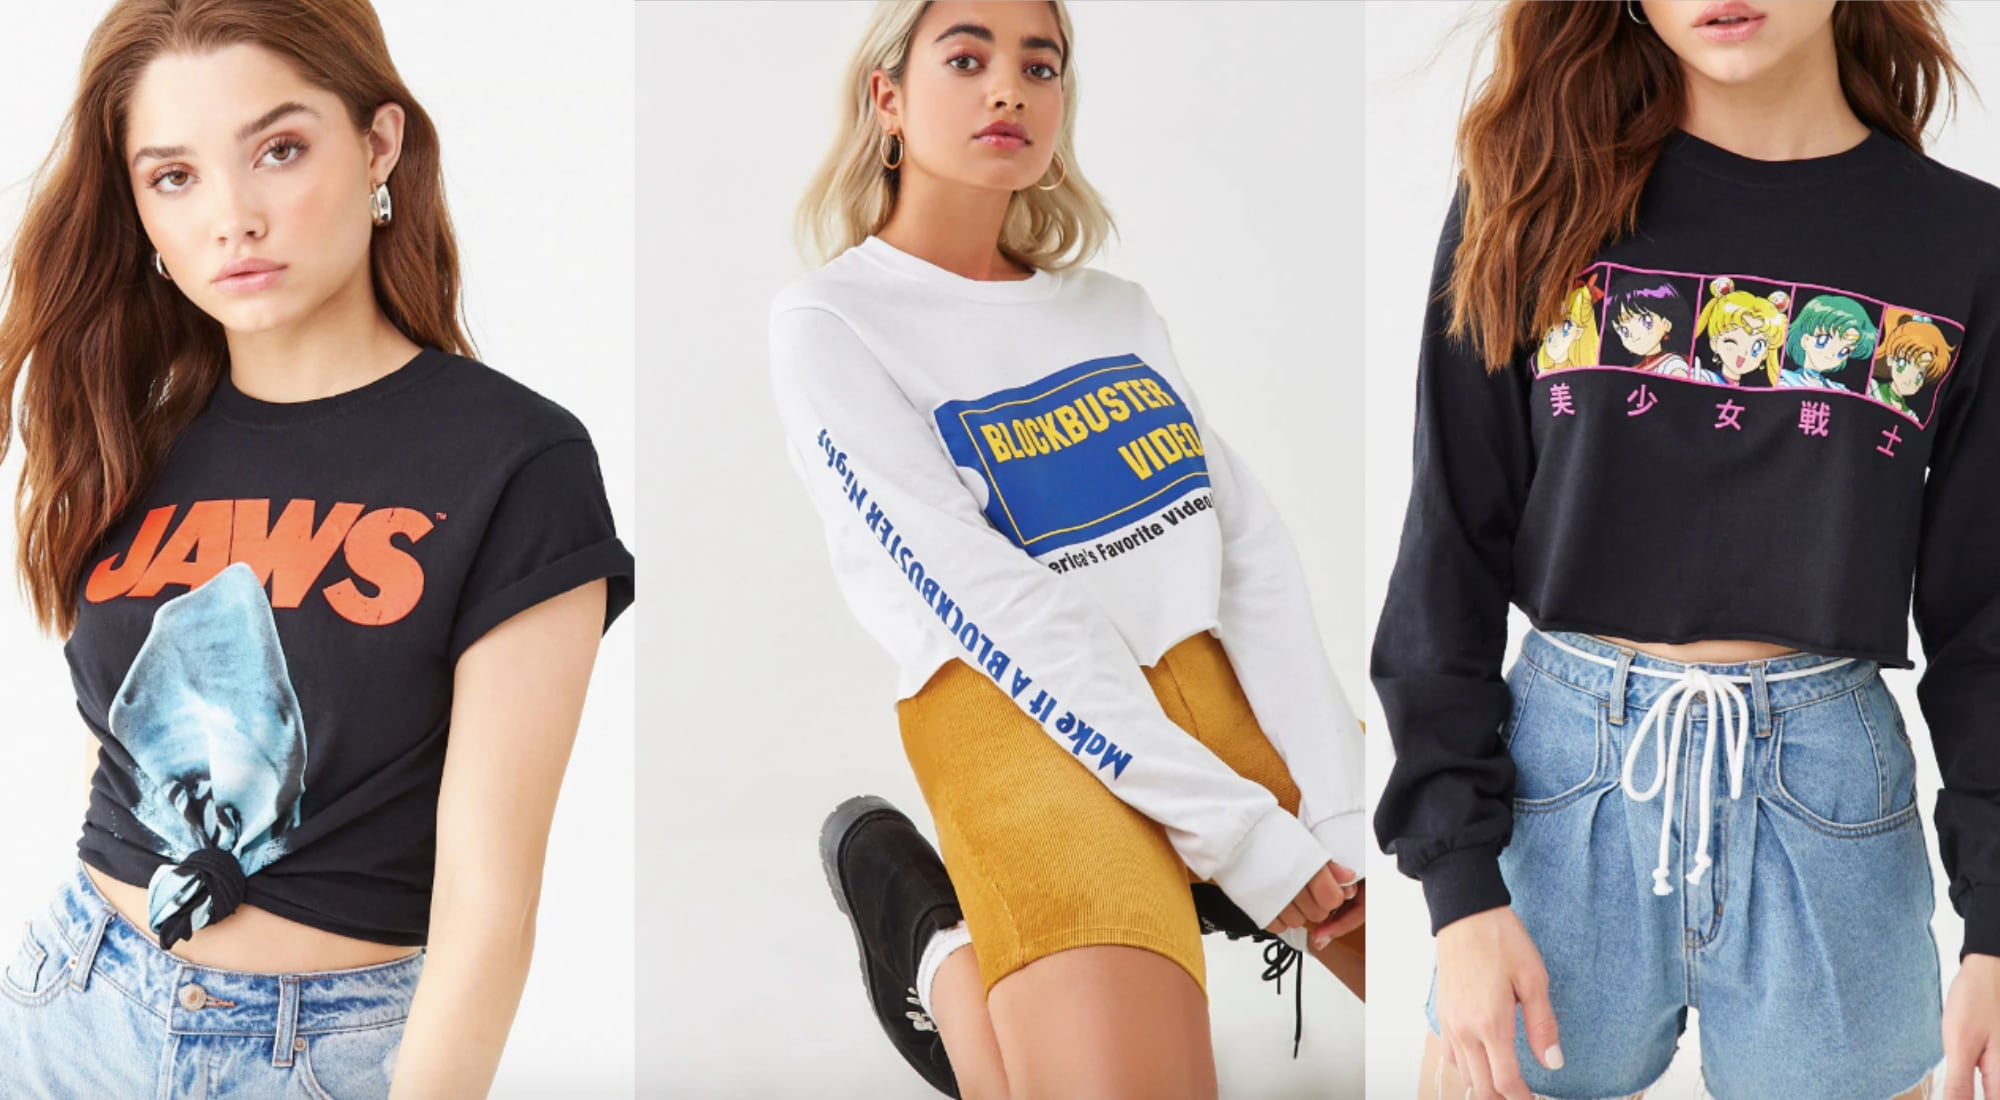 Forever 21 Is Closing Its Doors Forever - Graphic Tees